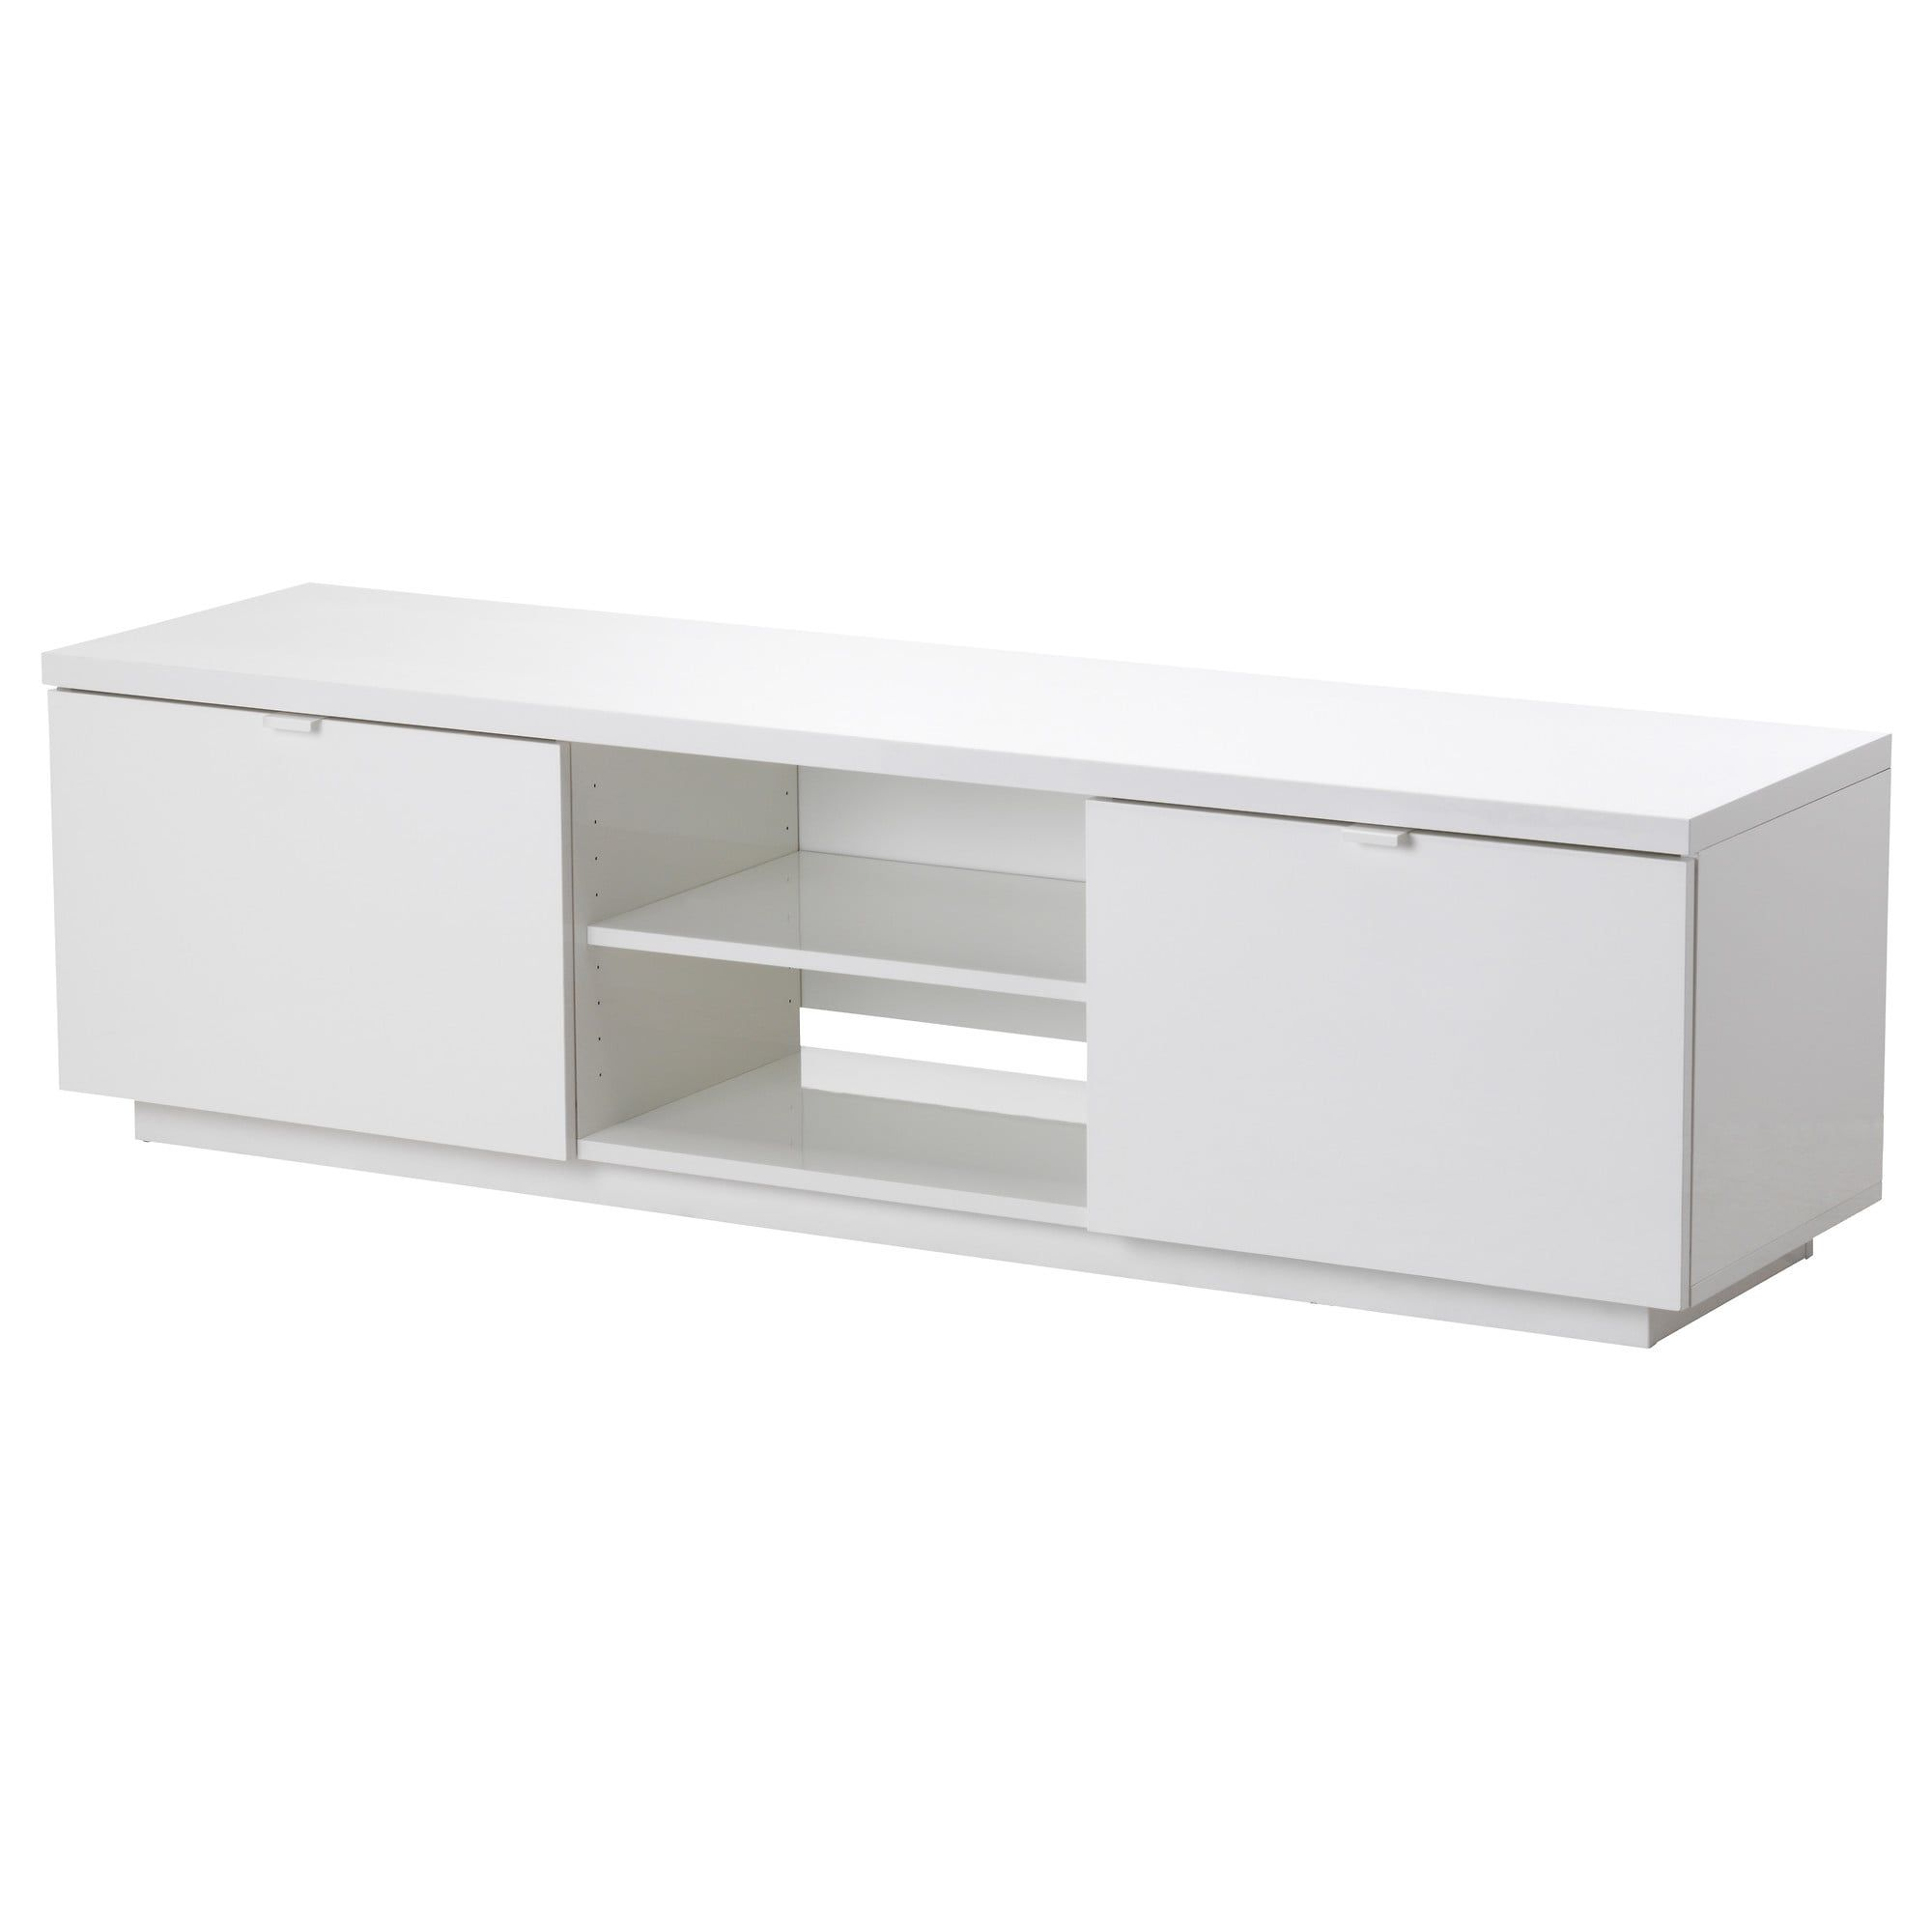 Admirable Ikea Byas High Gloss White Tv Unit Tv Bench Ikea Tv Stand Alphanode Cool Chair Designs And Ideas Alphanodeonline